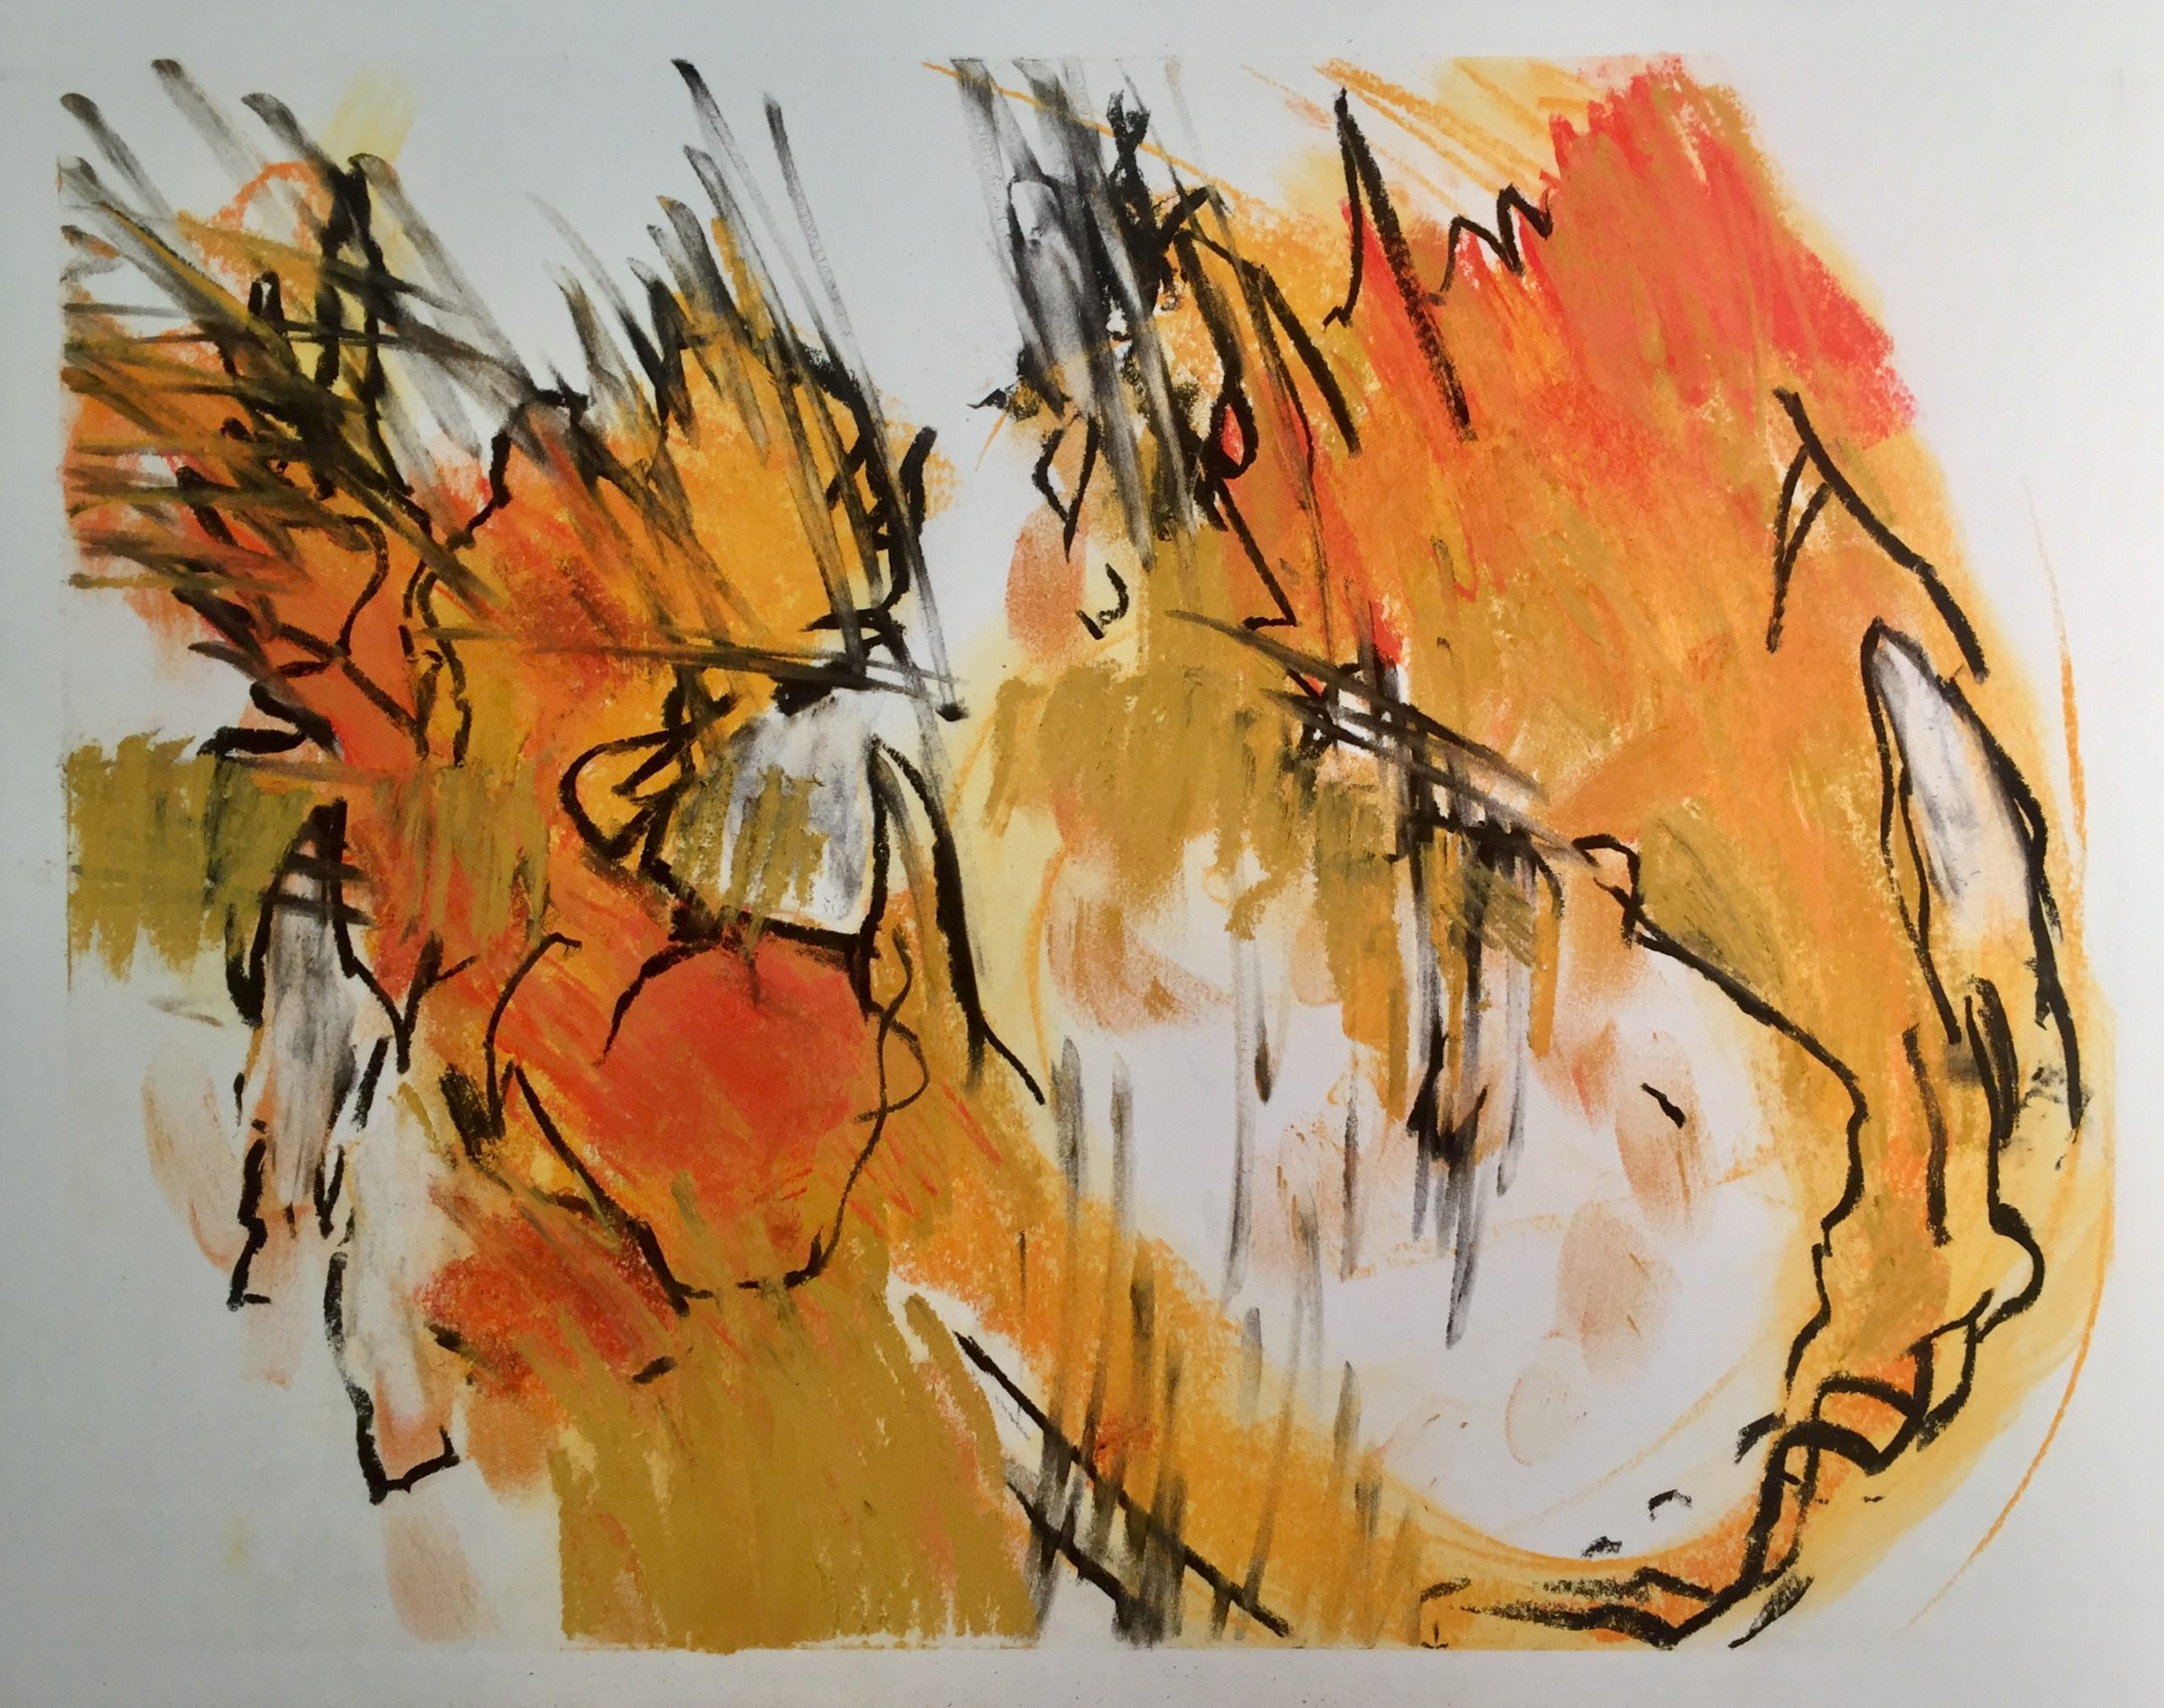 Jonathan Rich  -  Long-Footed Potoroo (from The Fire Drawings)  -  charcoal & pastel on paper  -  20 x 18  -  NFS